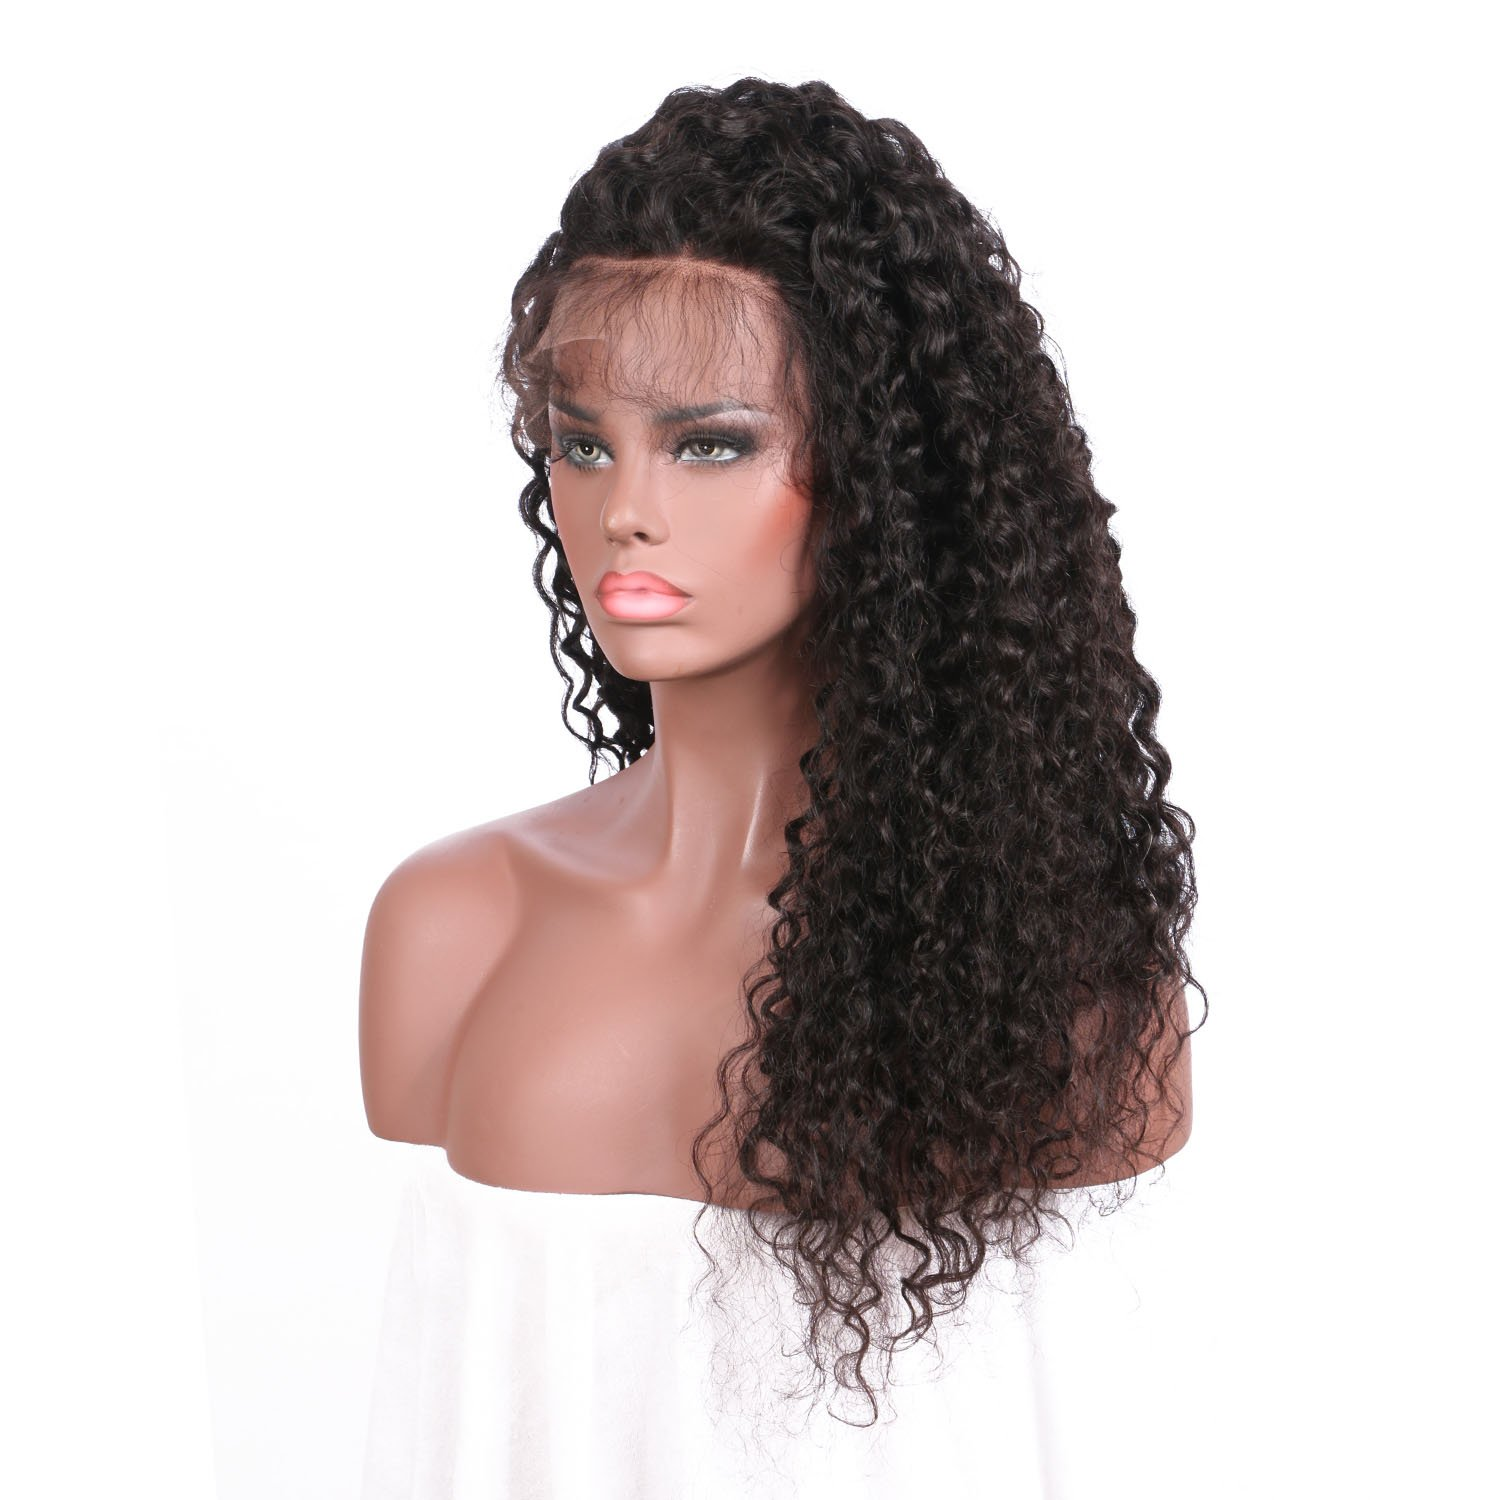 Lace Front Human Hair Wigs Deep Wave Curl Full Lace Human Hair Wigs For Black Women 8A Pre Plucked 130% Brazilian Lace Front Wigs (22 Inch Lace Front Wig) by Dream Beauty (Image #3)